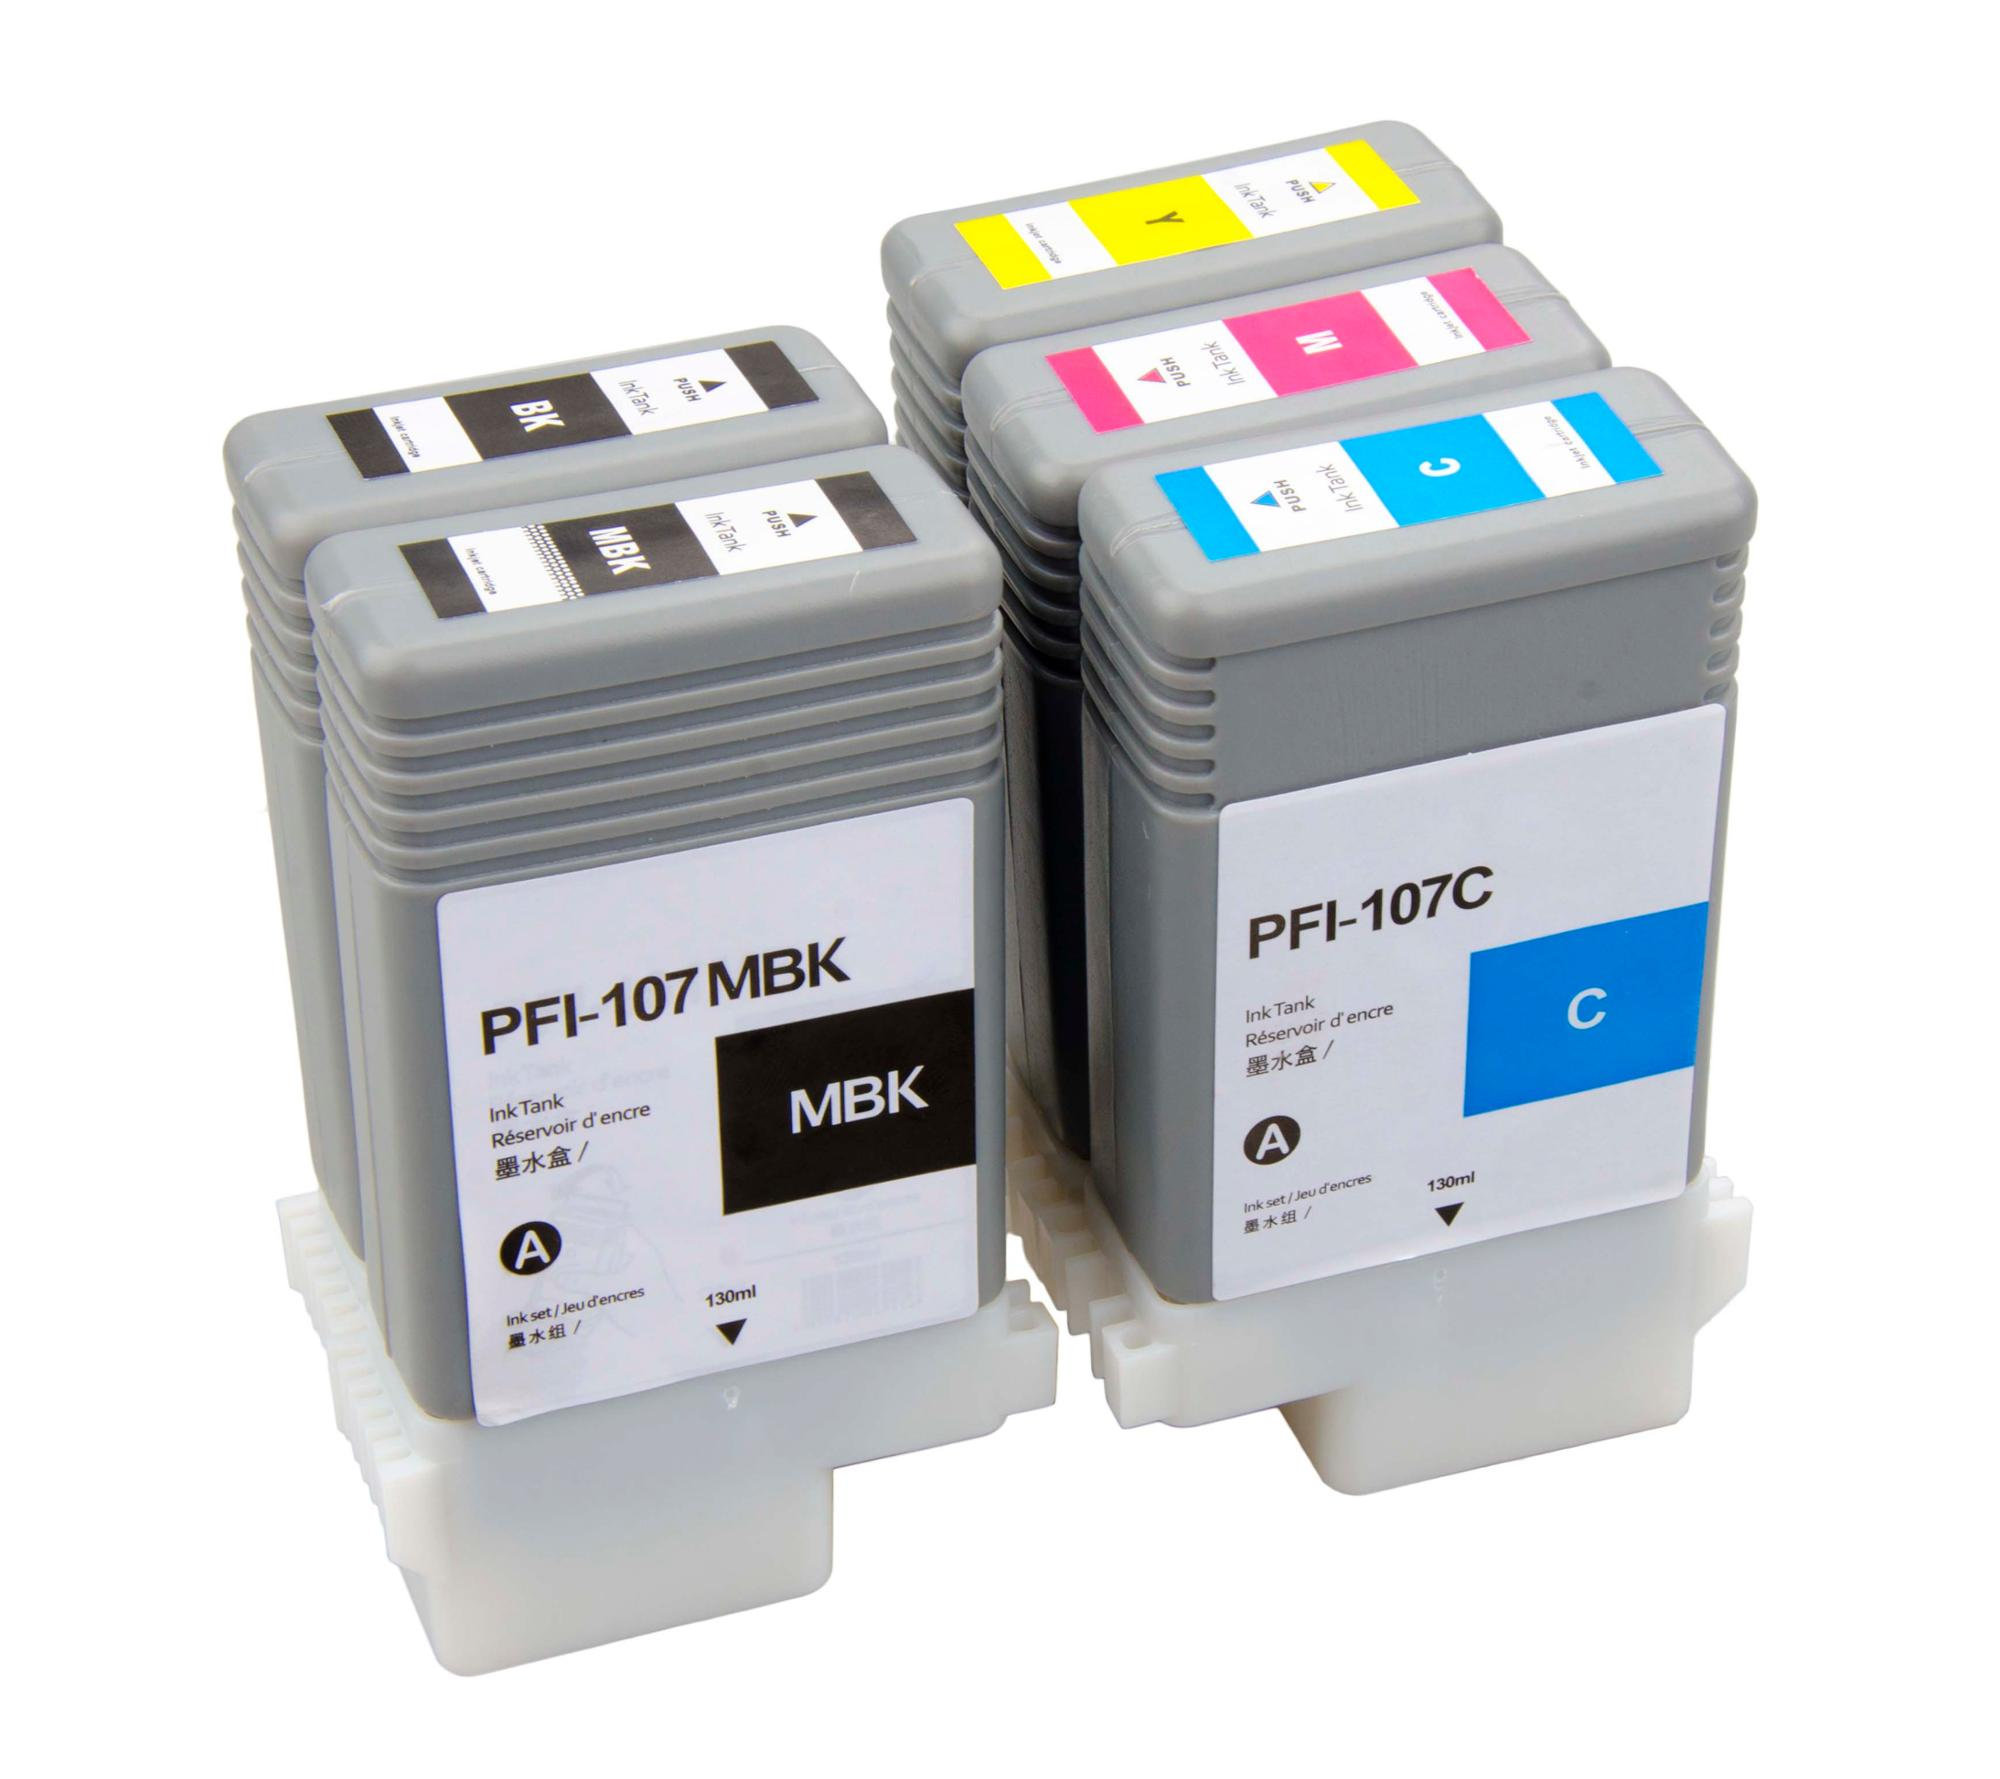 Compatible ink cartridge PFI107 Black for Canon ipf670 Printer model